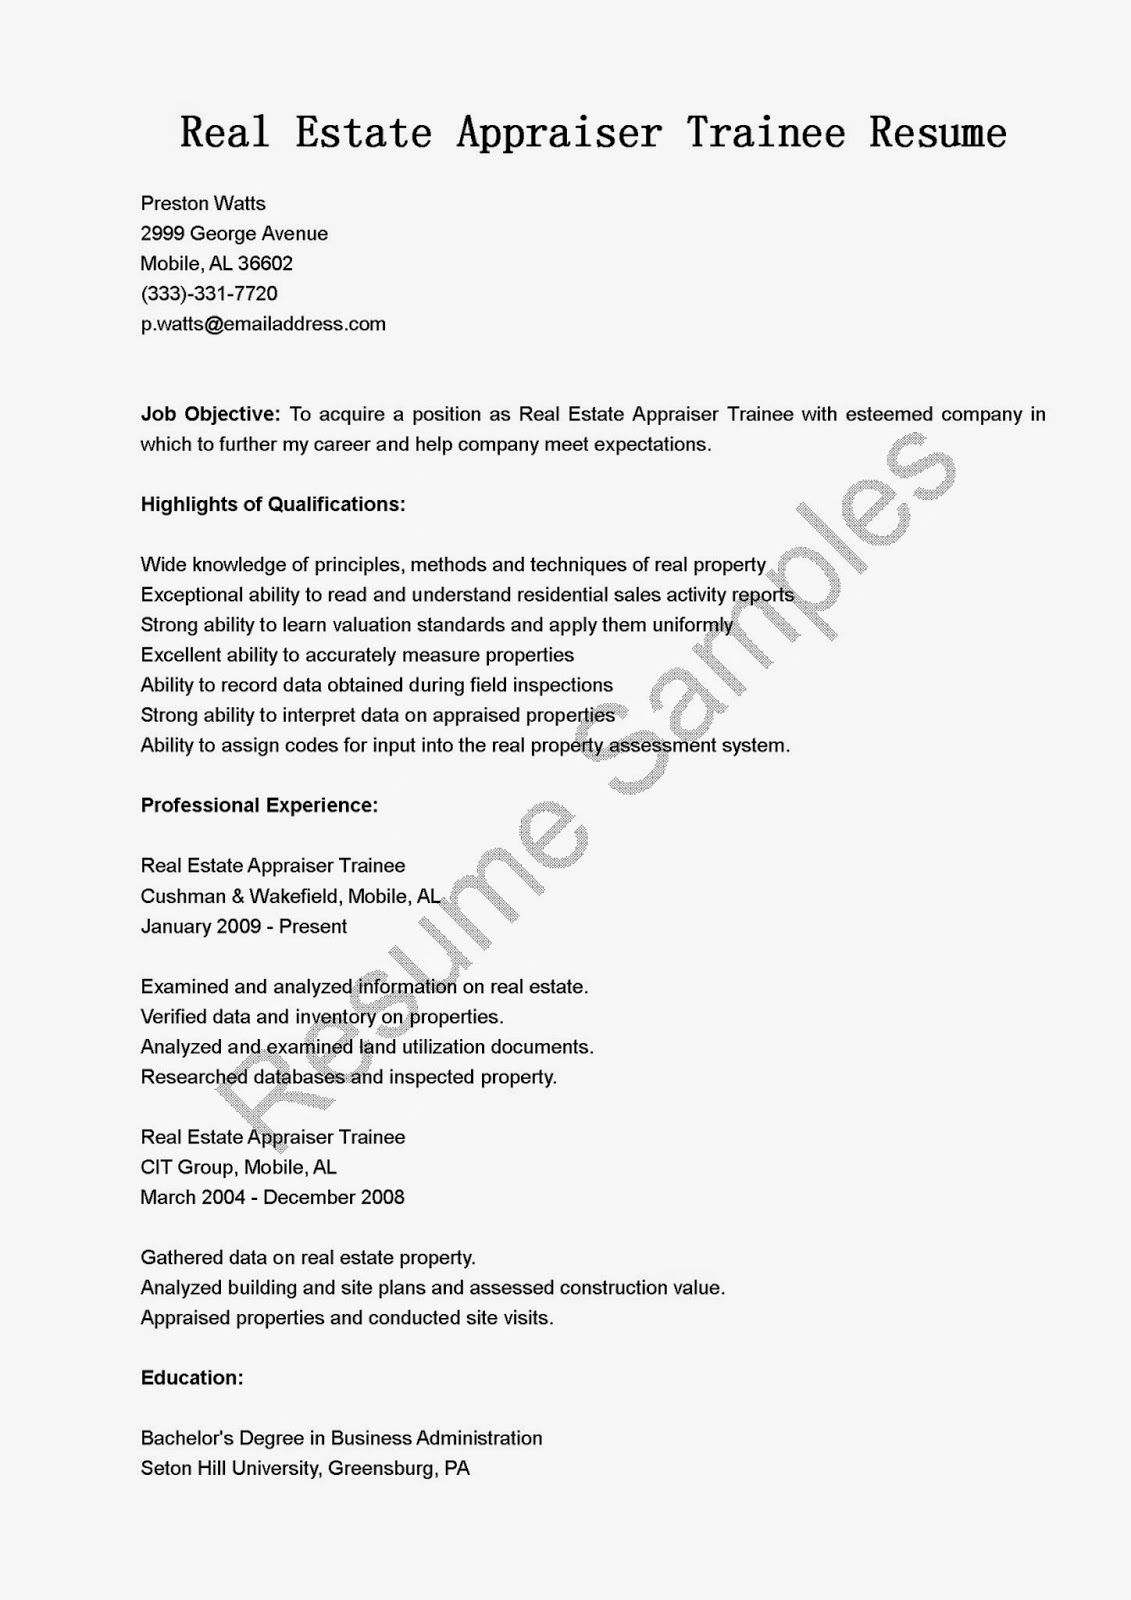 As400 Administration Sample Resume Real Estate Appraiser Trainee Resume Sample Resume Samples